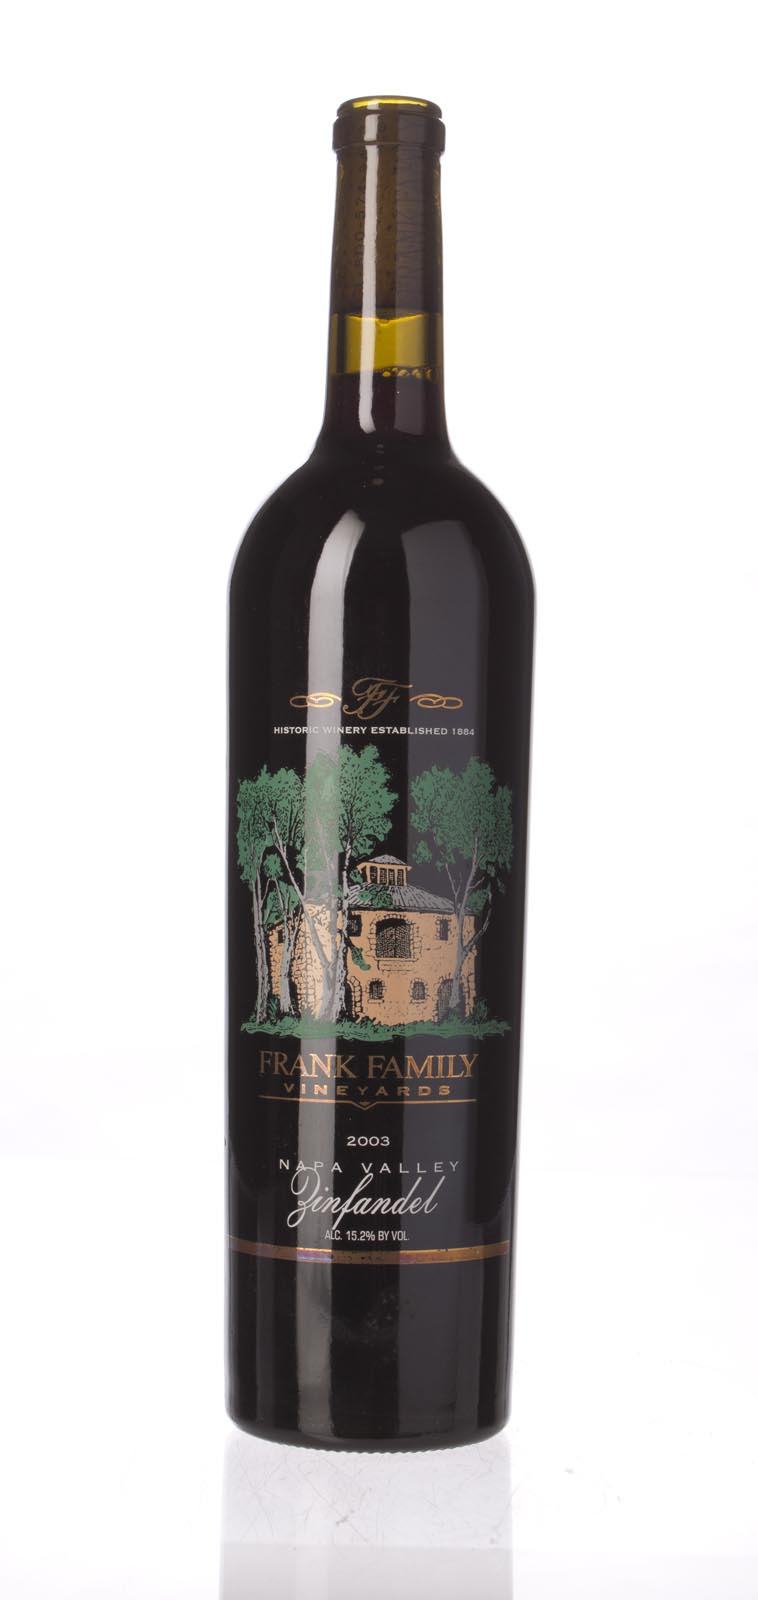 Frank Family Zinfandel Napa Valley 2003, 750ml () from The BPW - Merchants of rare and fine wines.